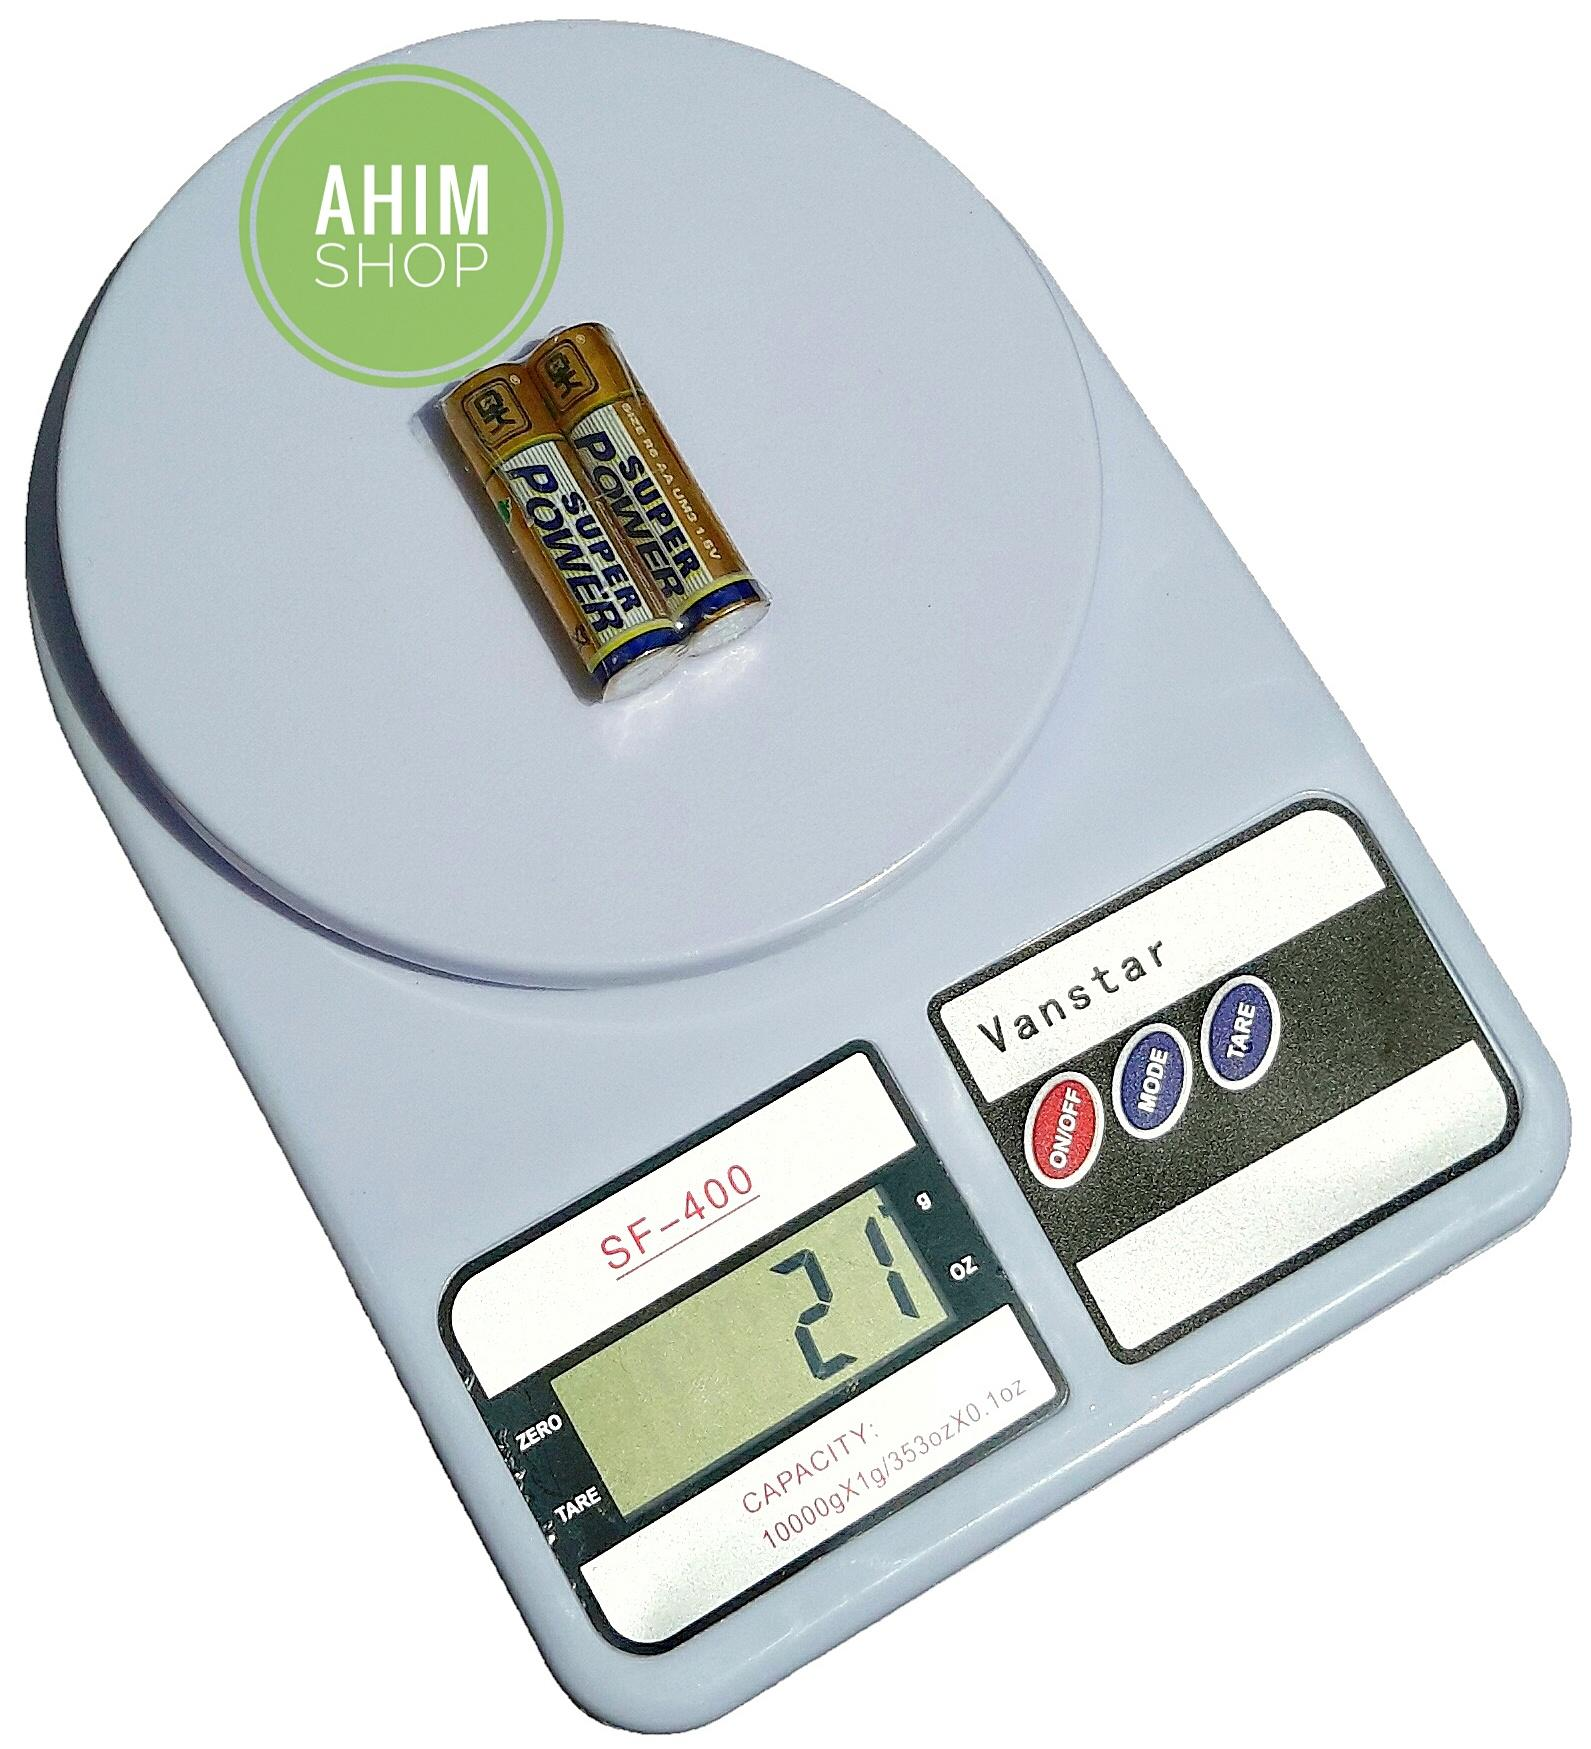 Review Timbangan Dapur Digital Vanstar Sf 400 Max 10 Kg 10kg Max10 Electronic Kitchen Scale